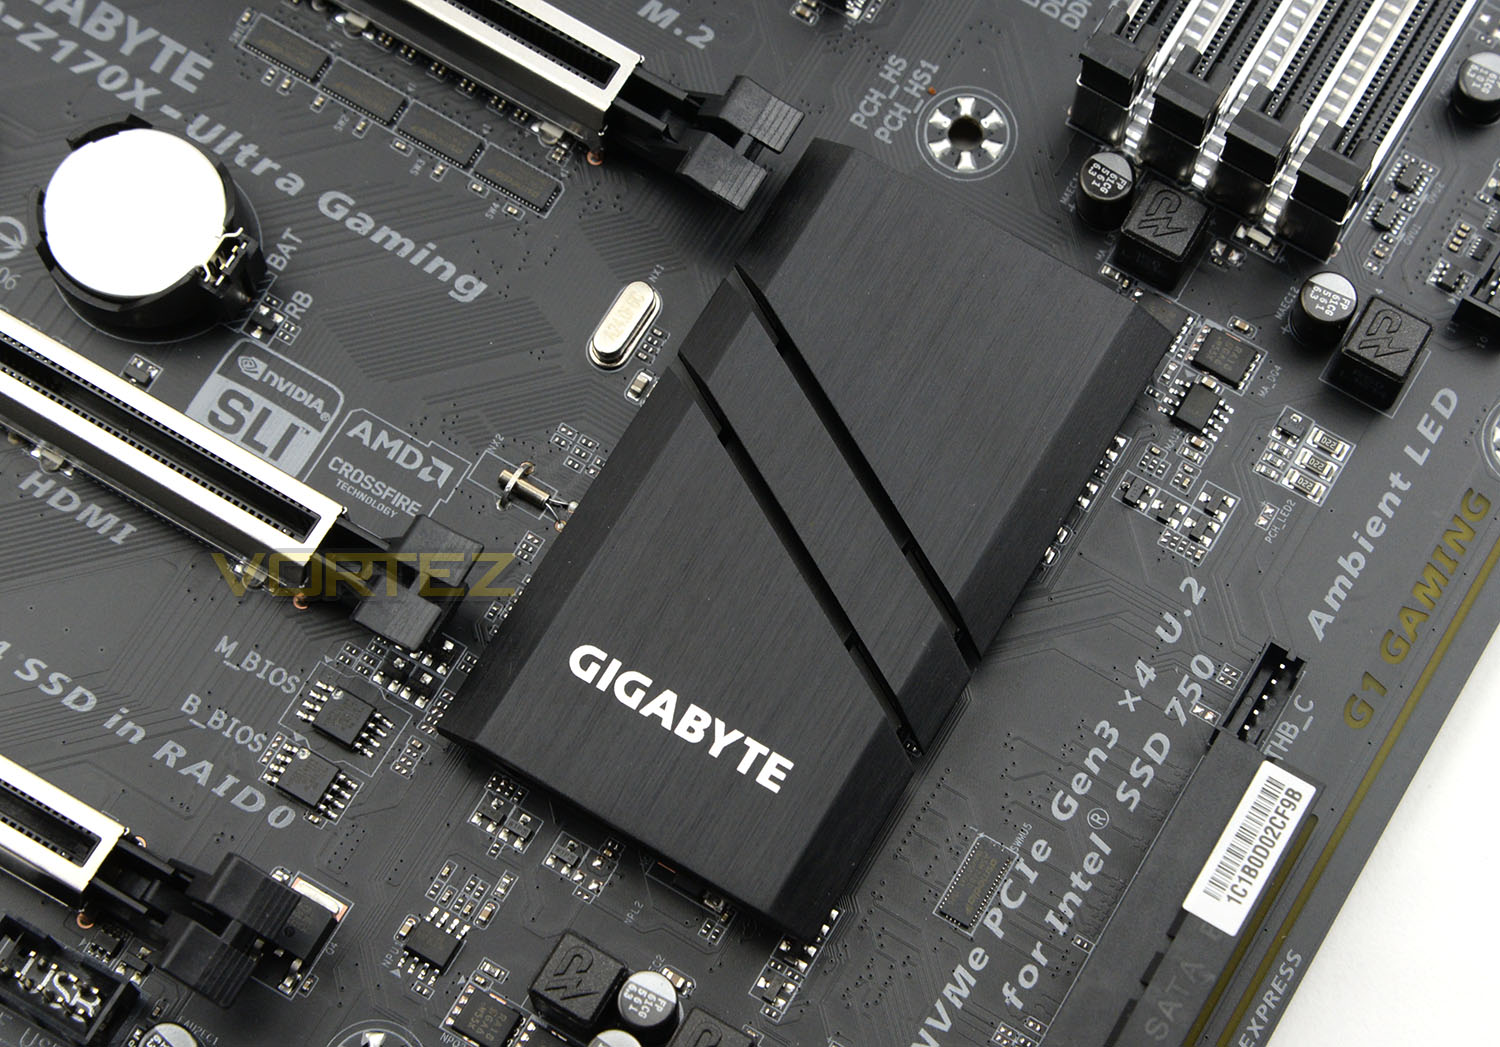 GIGABYTE Z170X-Ultra Gaming Review - Closer Look